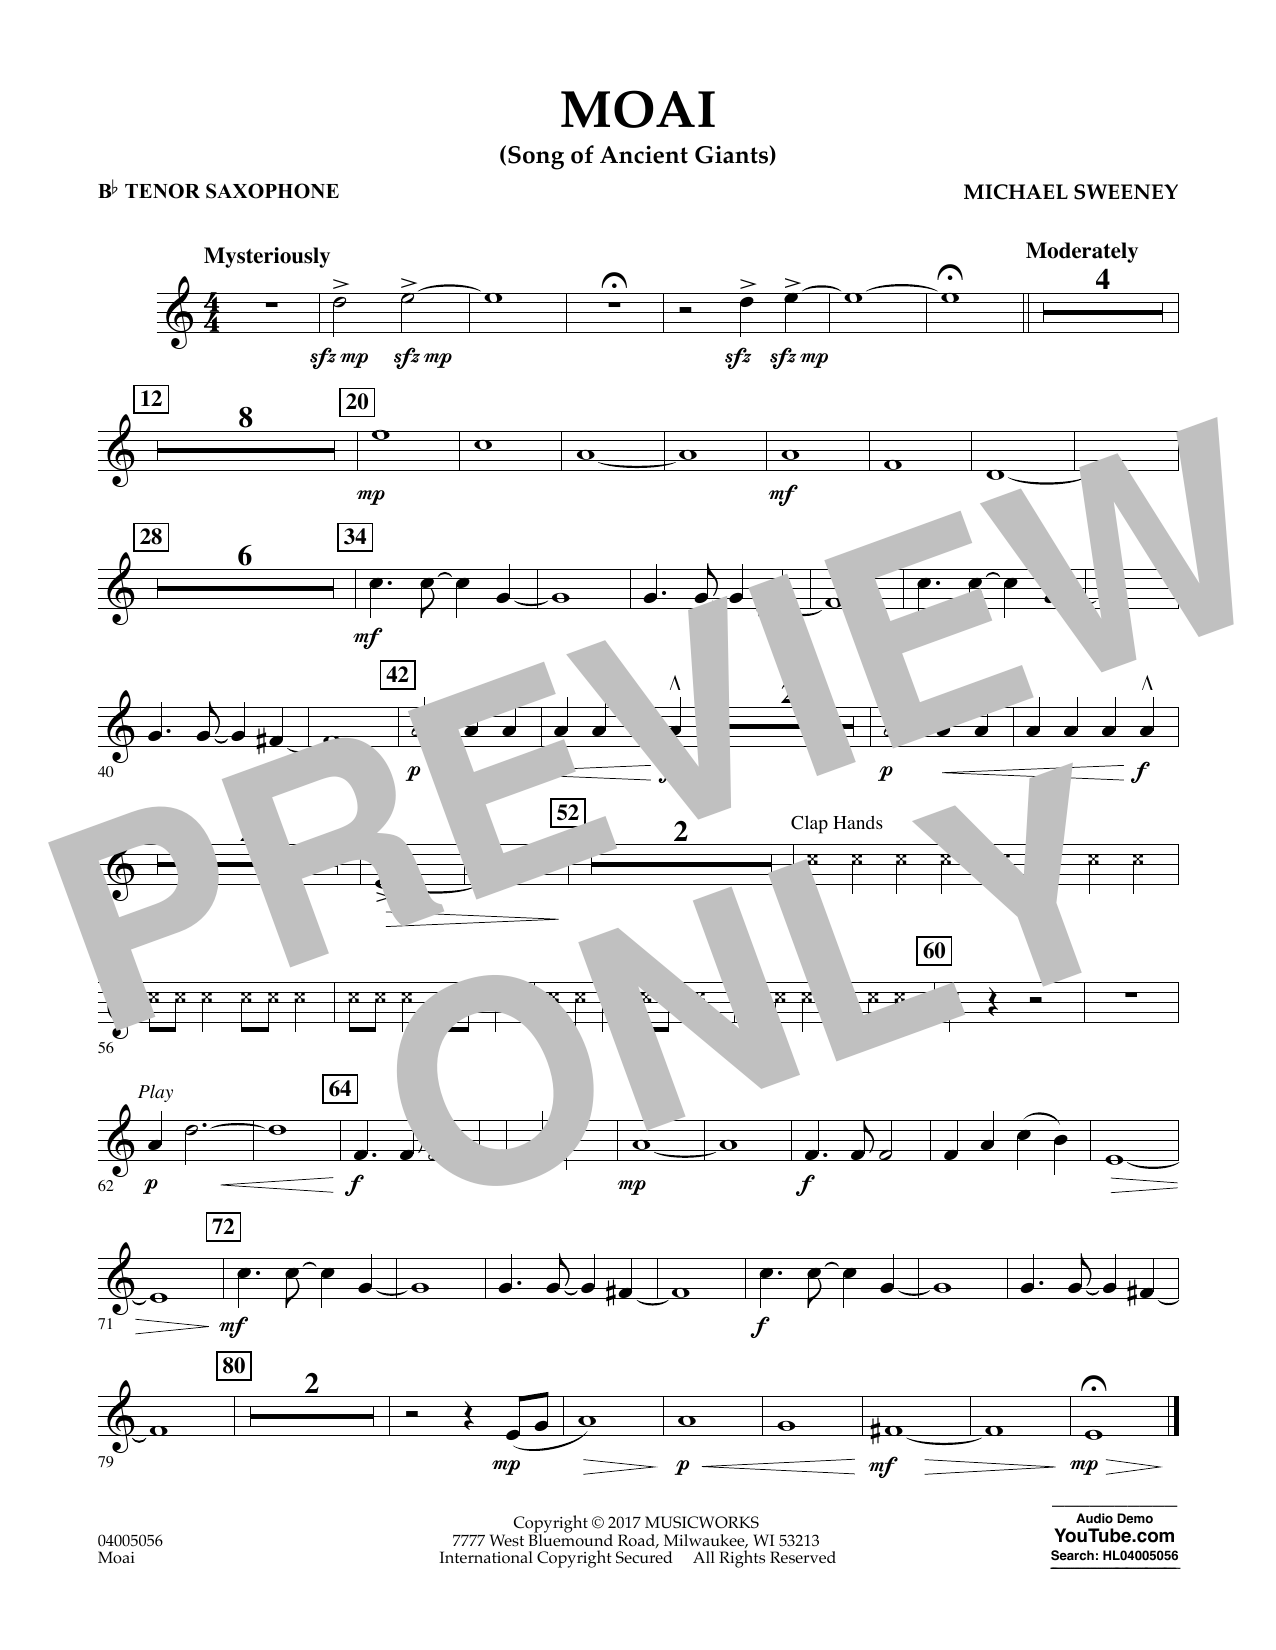 Michael Sweeney Moai (Songs of Ancient Giants) - Bb Tenor Saxophone sheet music notes and chords. Download Printable PDF.